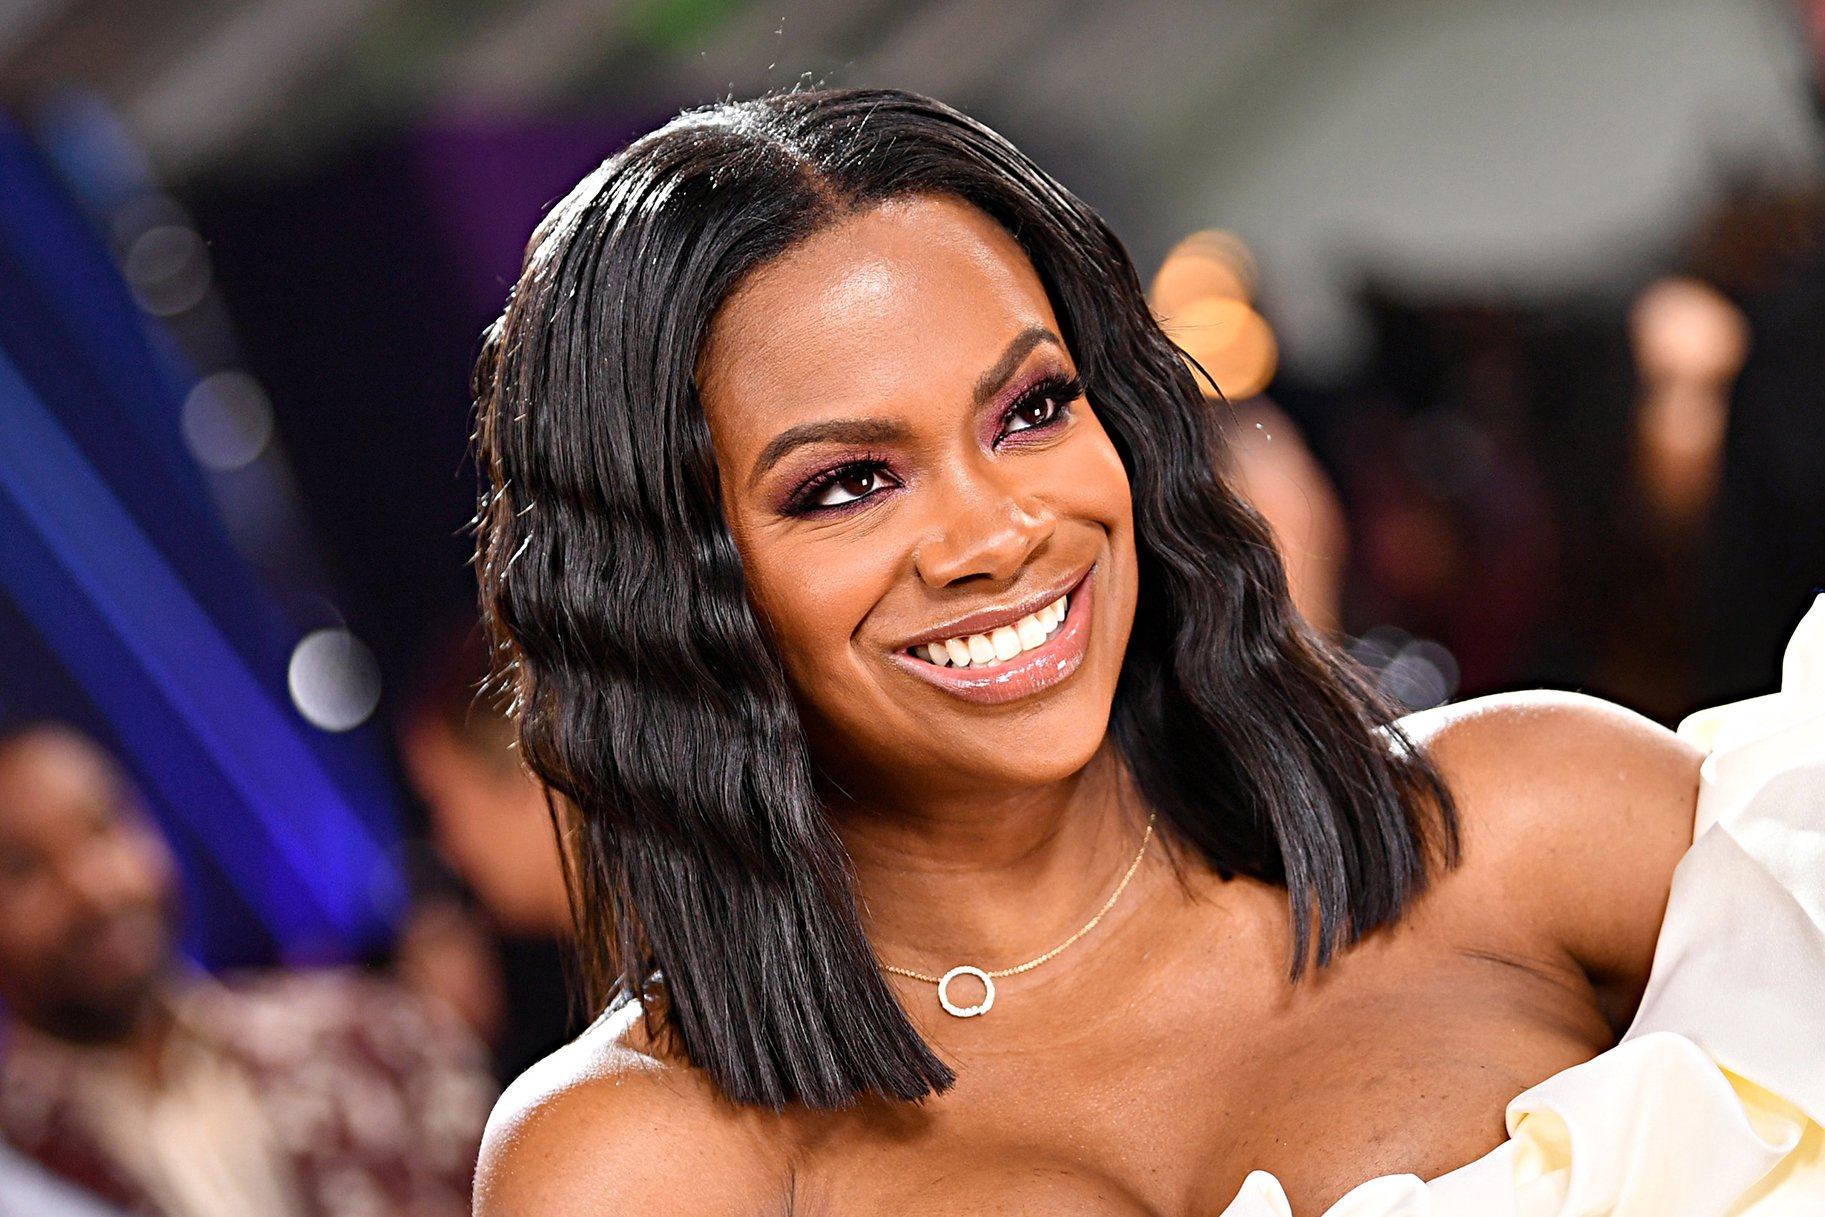 Kandi Burruss Tells Fans That It's Time To Spice Up Their Lives – See Her Clip